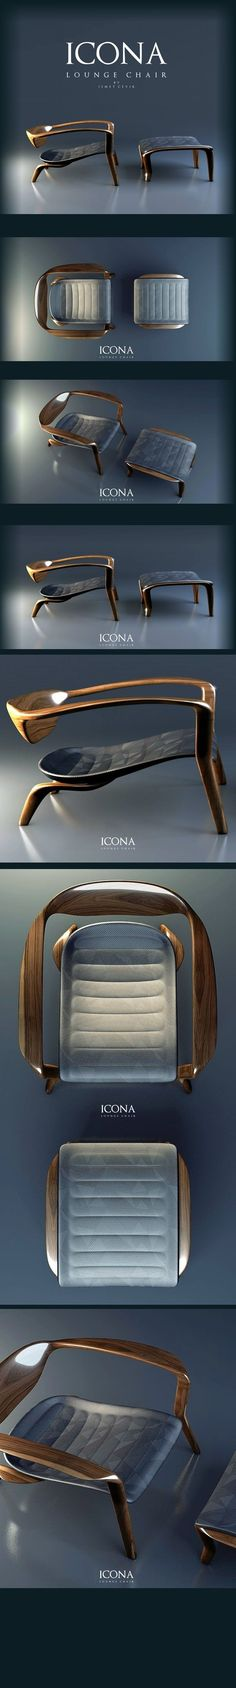 Icona Lounge: une #chaise #design par Ismet Cevik